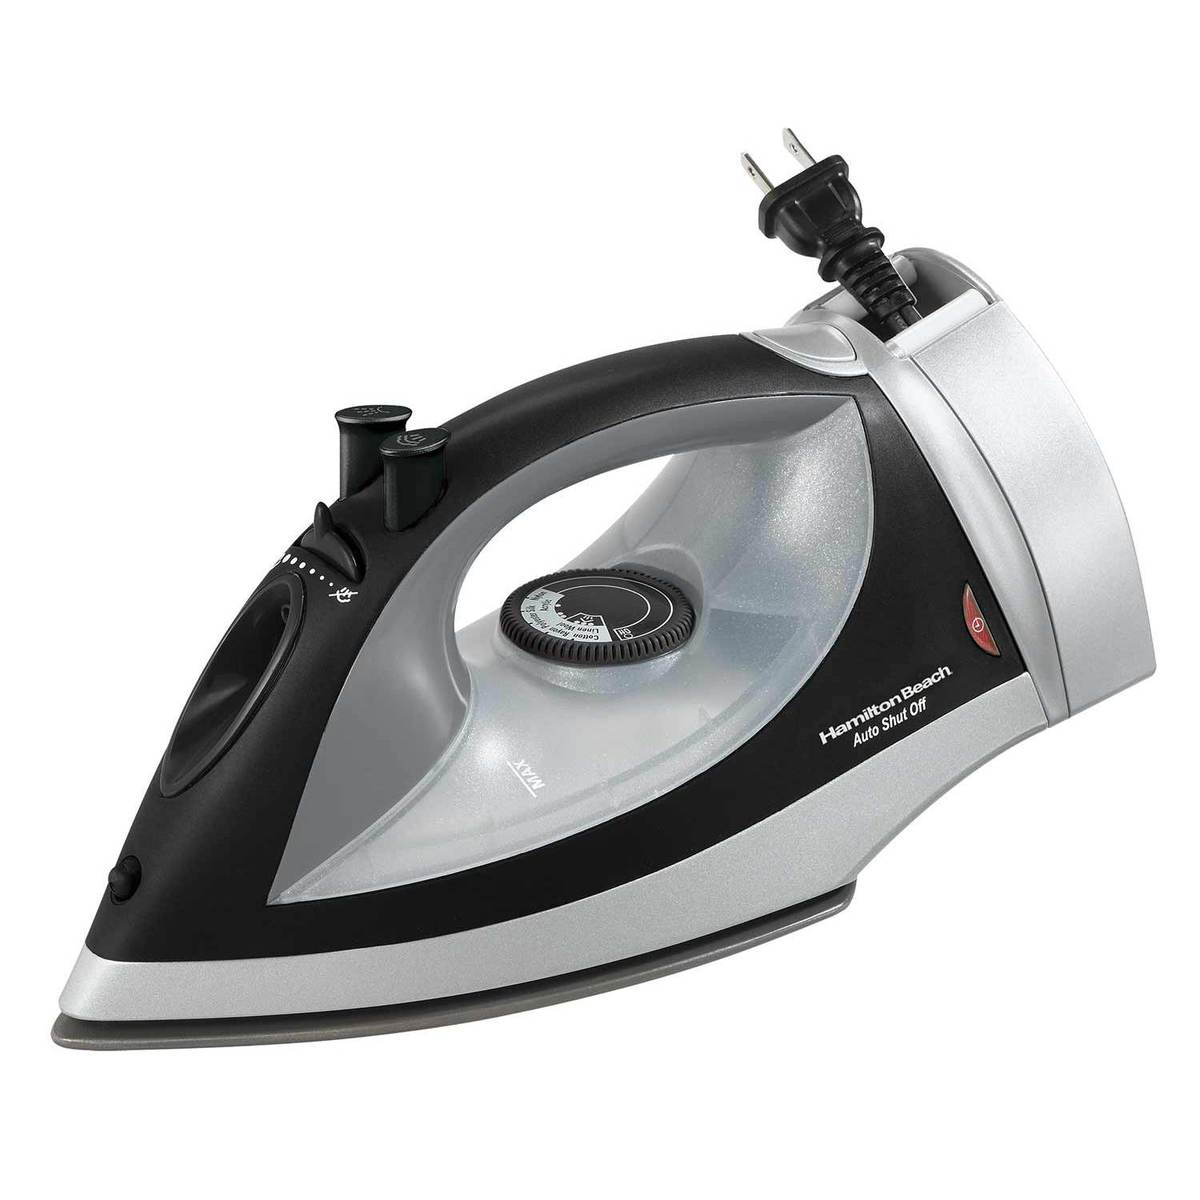 Nonstick Iron with Retractable Cord (14210)